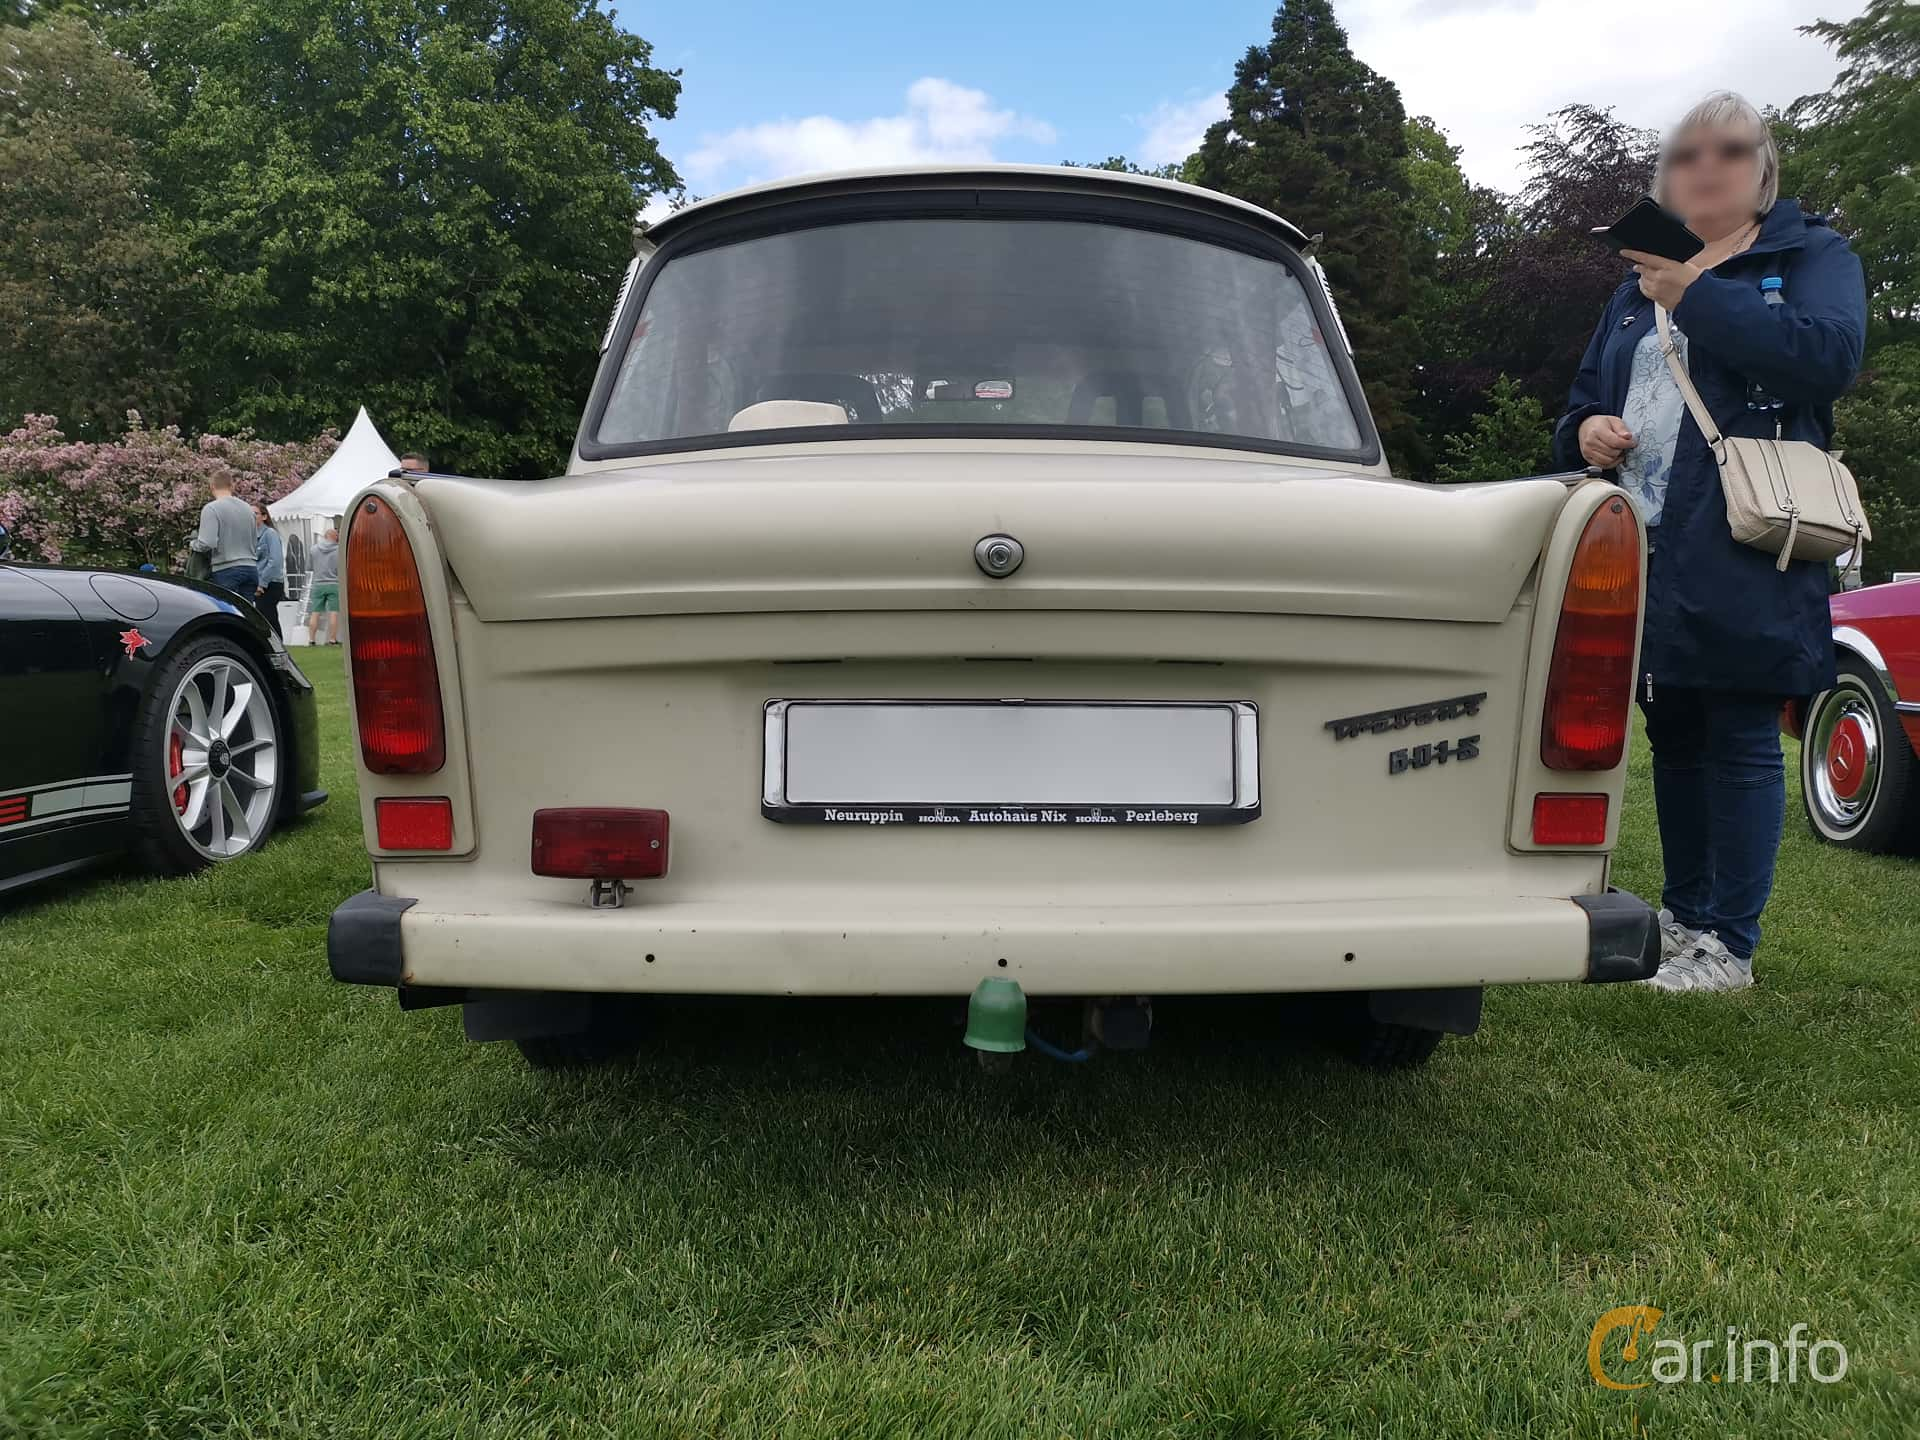 Trabant 601 Sedan 0.6 Manuell, 26hk, 1987 at Sofiero Classic 2019